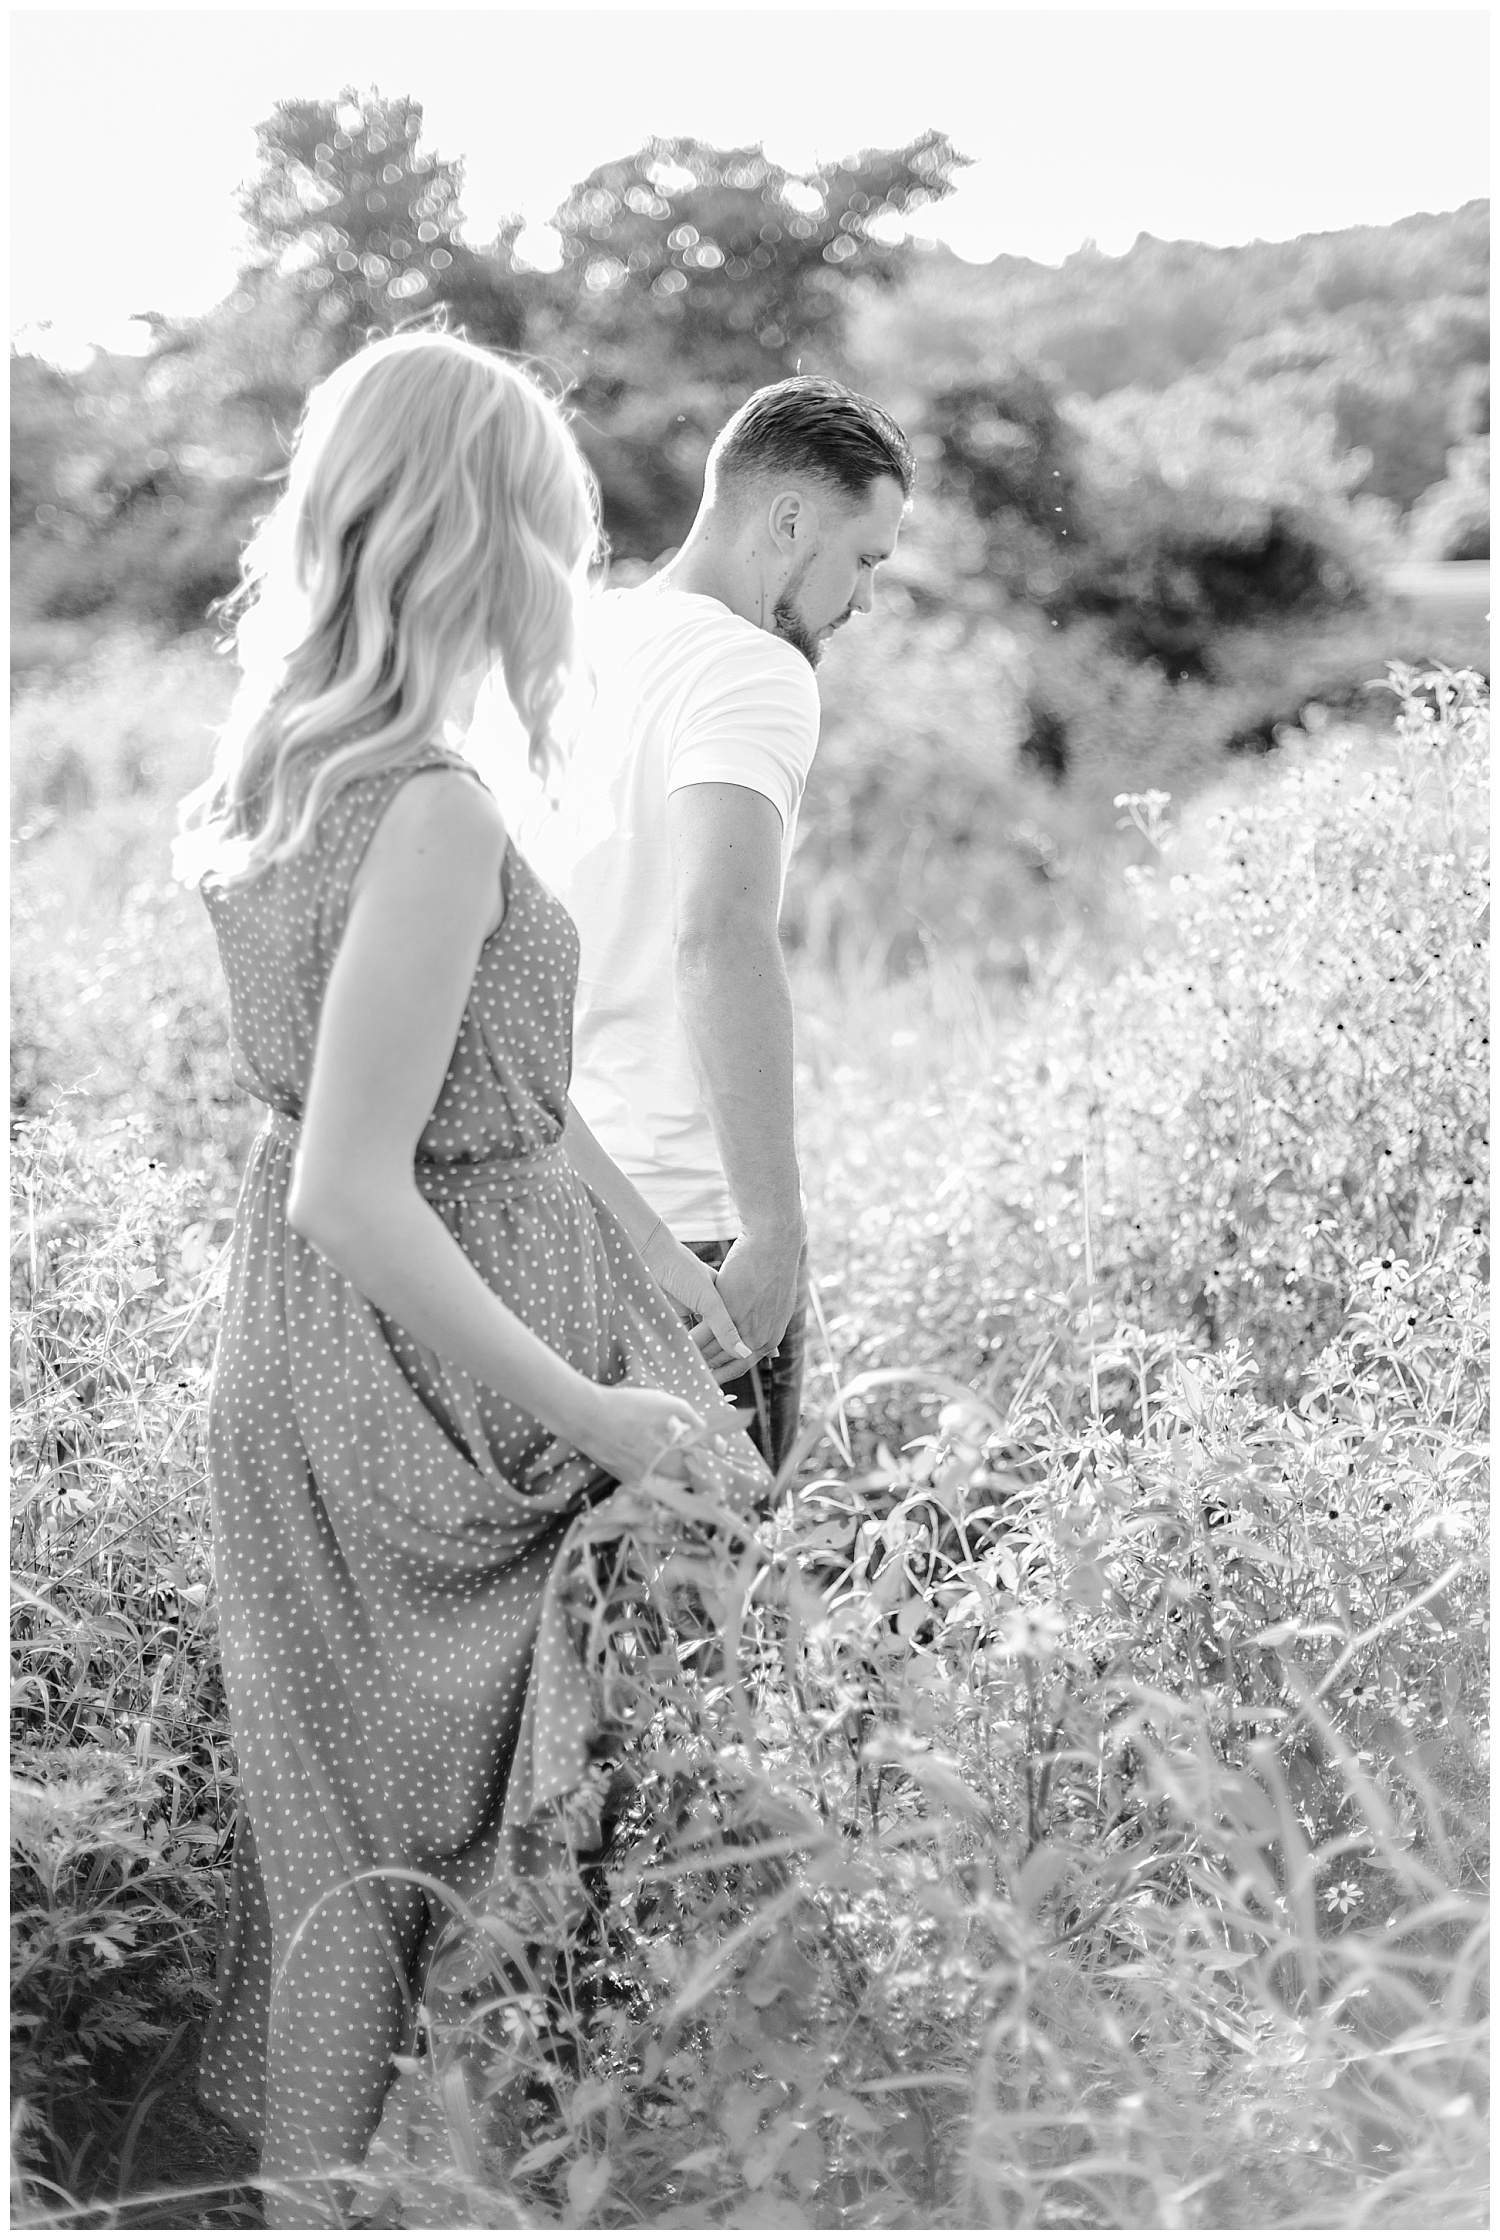 Blue Marsh Lake Reading Pennsylvania flower field golden hour engagement session by PA based wedding and lifestyle photographer Lytle photography_0014.jpg